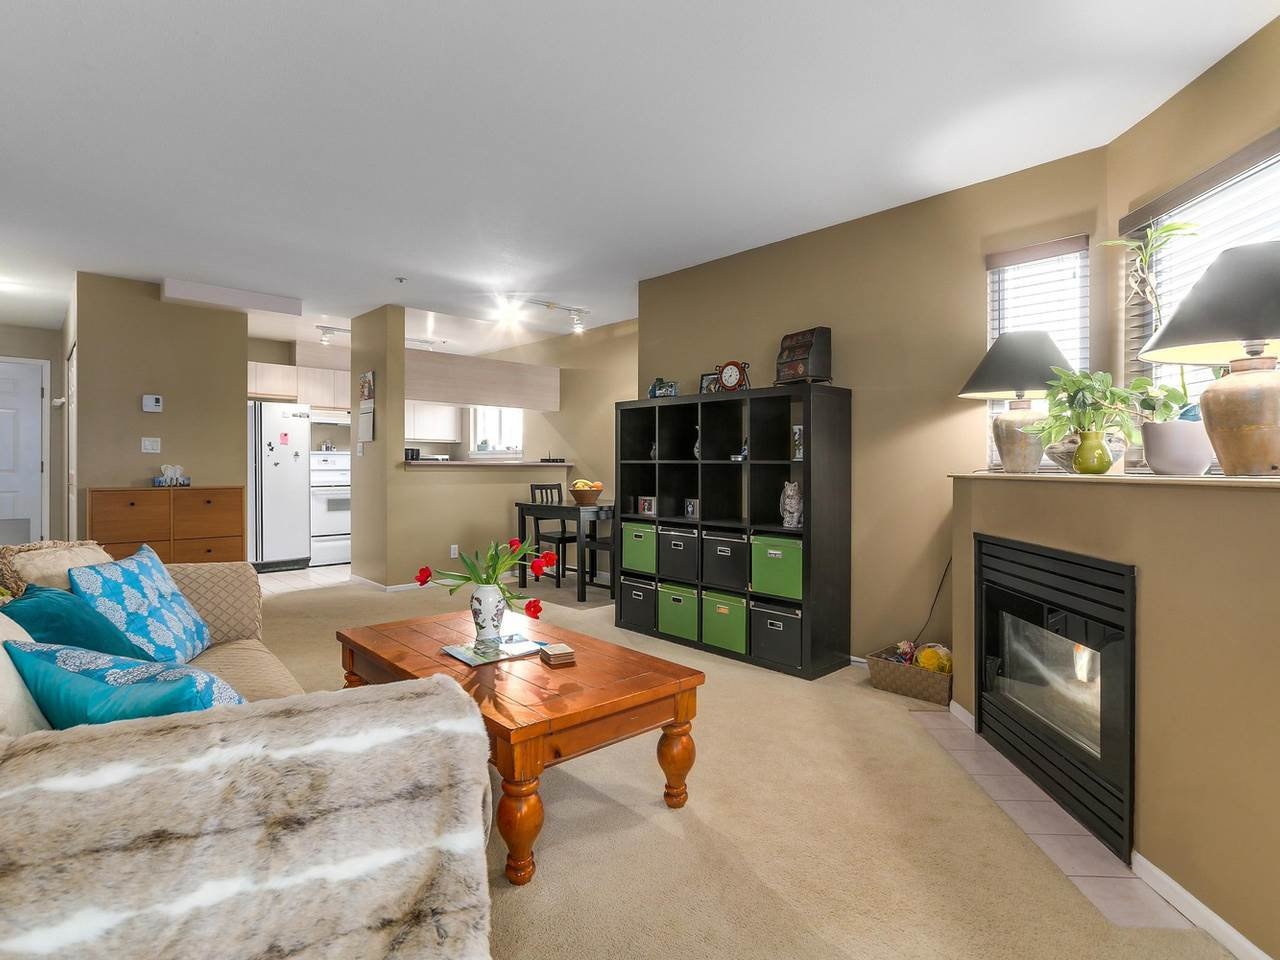 """Photo 4: Photos: 301 1623 E 2ND Avenue in Vancouver: Grandview VE Condo for sale in """"GRANDVIEW MANOR"""" (Vancouver East)  : MLS®# R2122830"""